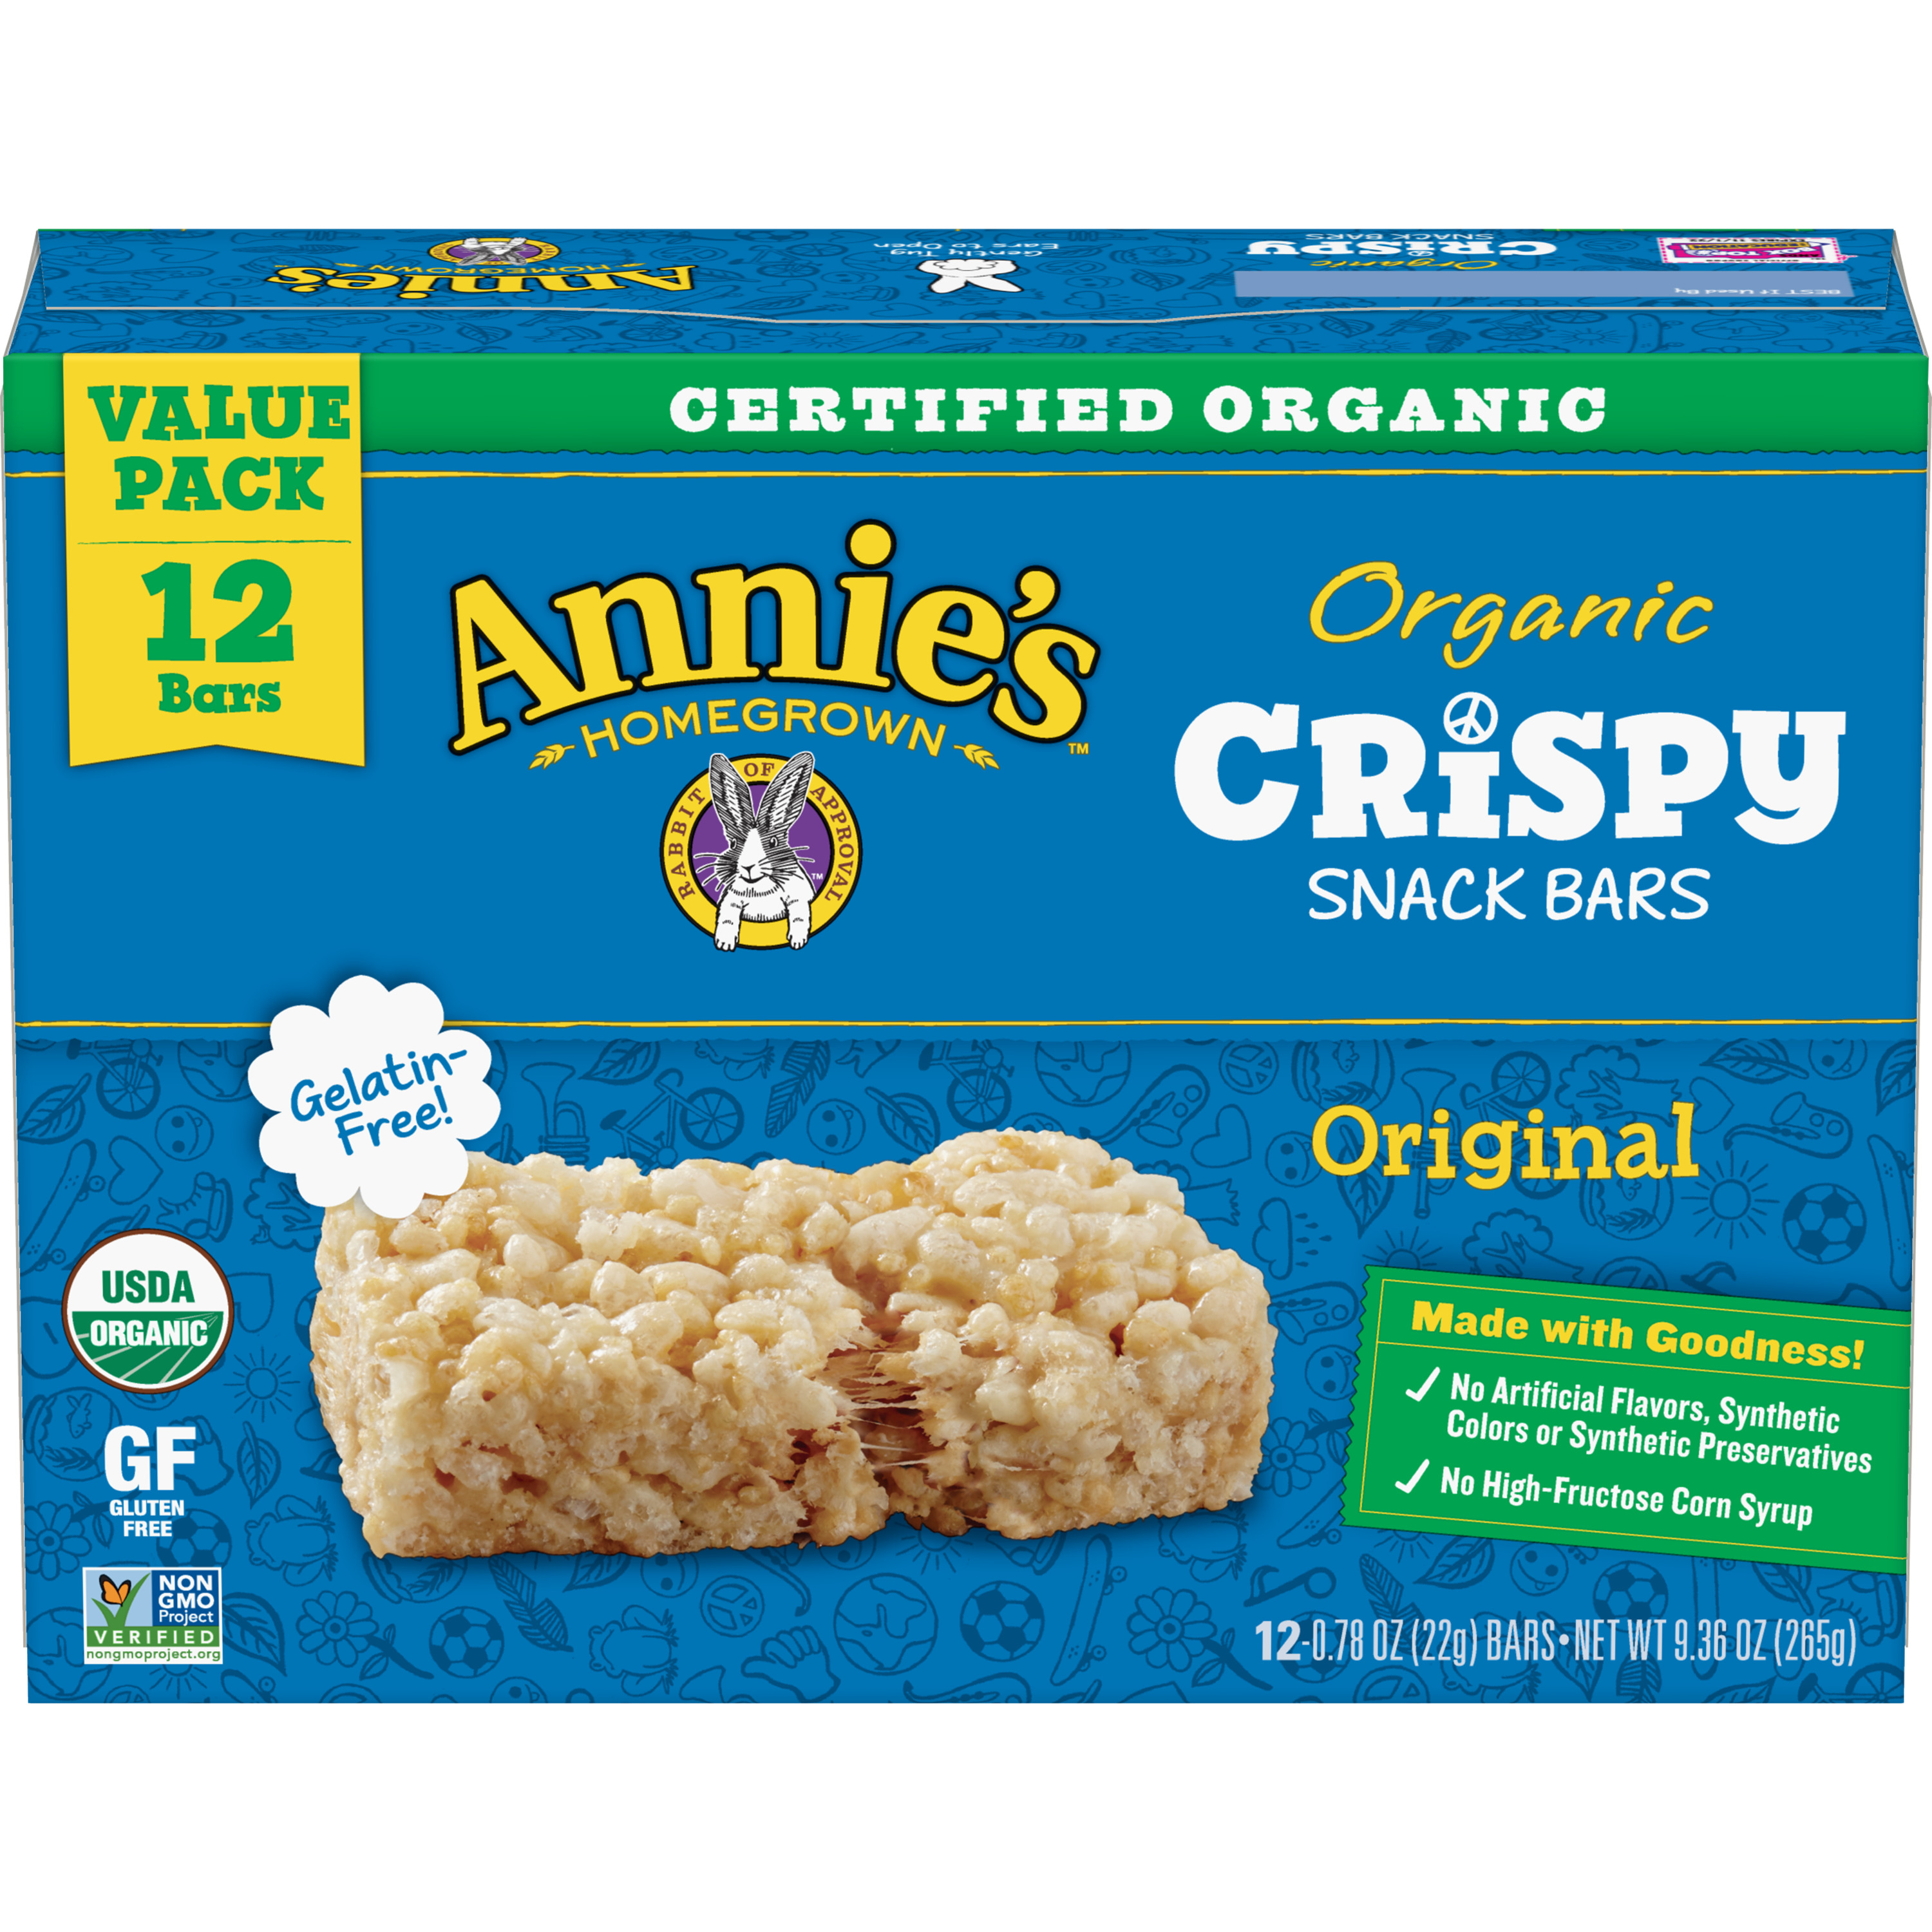 Annie's Organic Crispy Snack Bars Original Value Pack, 12 ct, 9.36 oz, 0.78 OZ